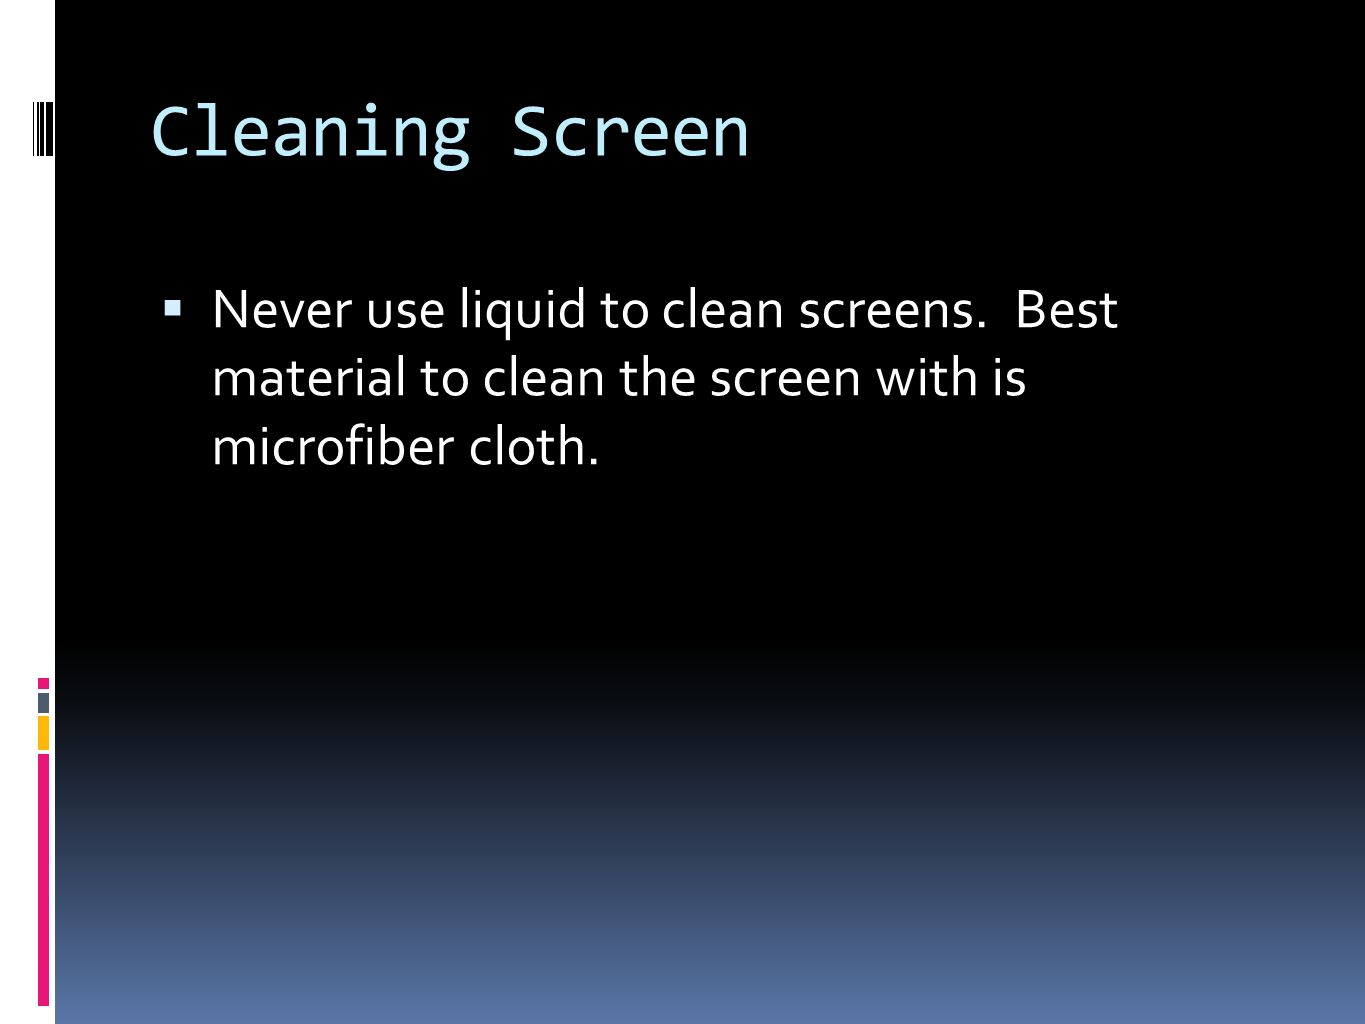 Cleaning Screen Never use liquid to clean screens.